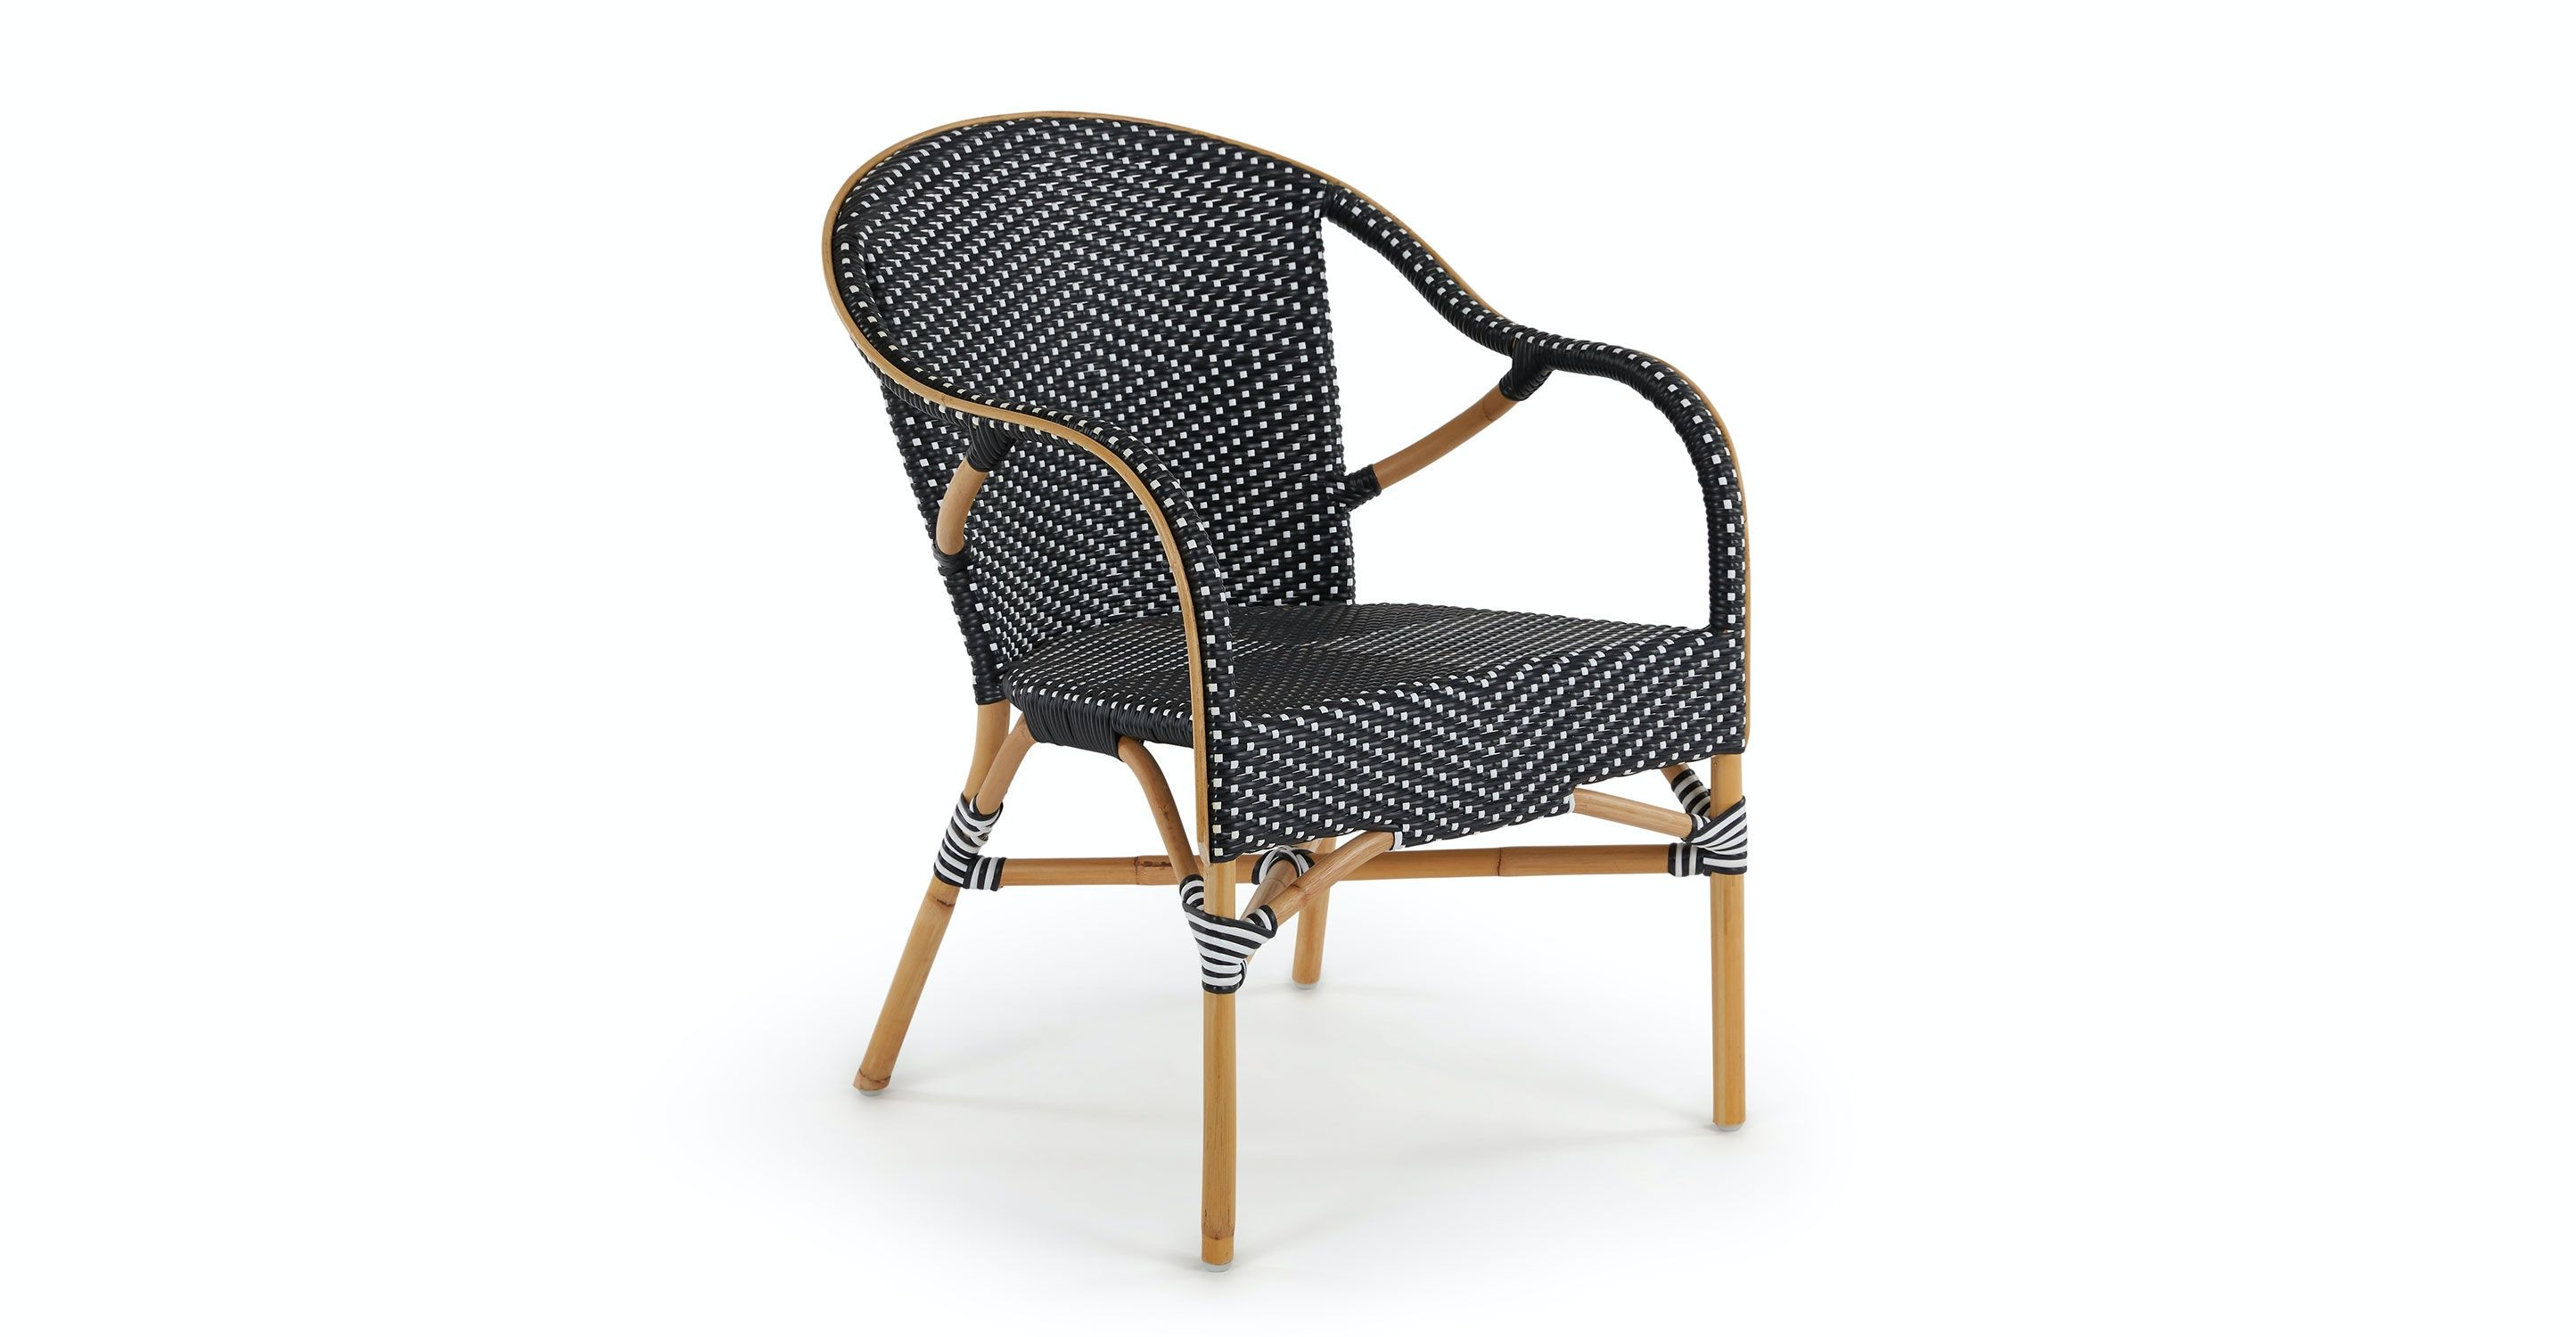 Black And White Toulouse Rattan Wicker Dining Armchair Article Wicker Dining Armchair Outdoor Dining Chairs Contemporary Outdoor Furniture